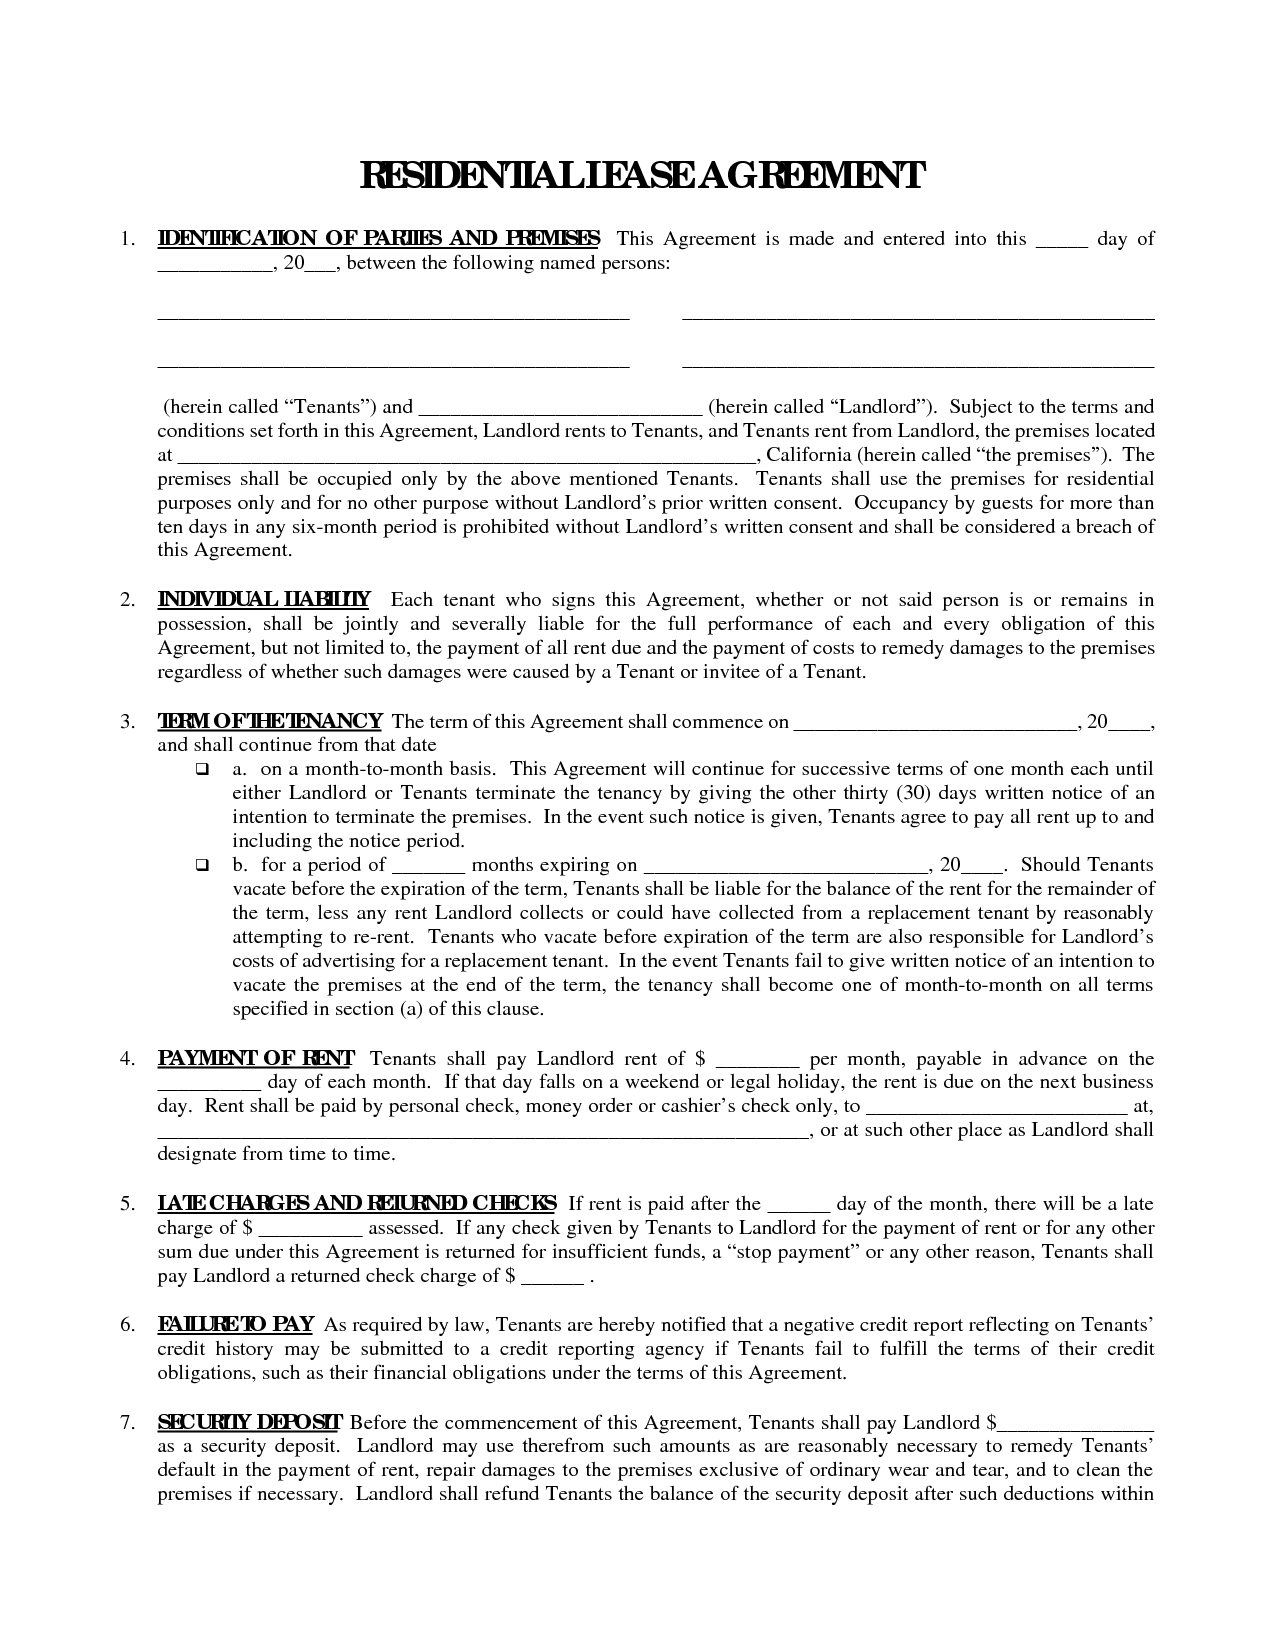 Printable Residential Free House Lease Agreement | Residential Lease - Free Printable Lease Agreement Ny